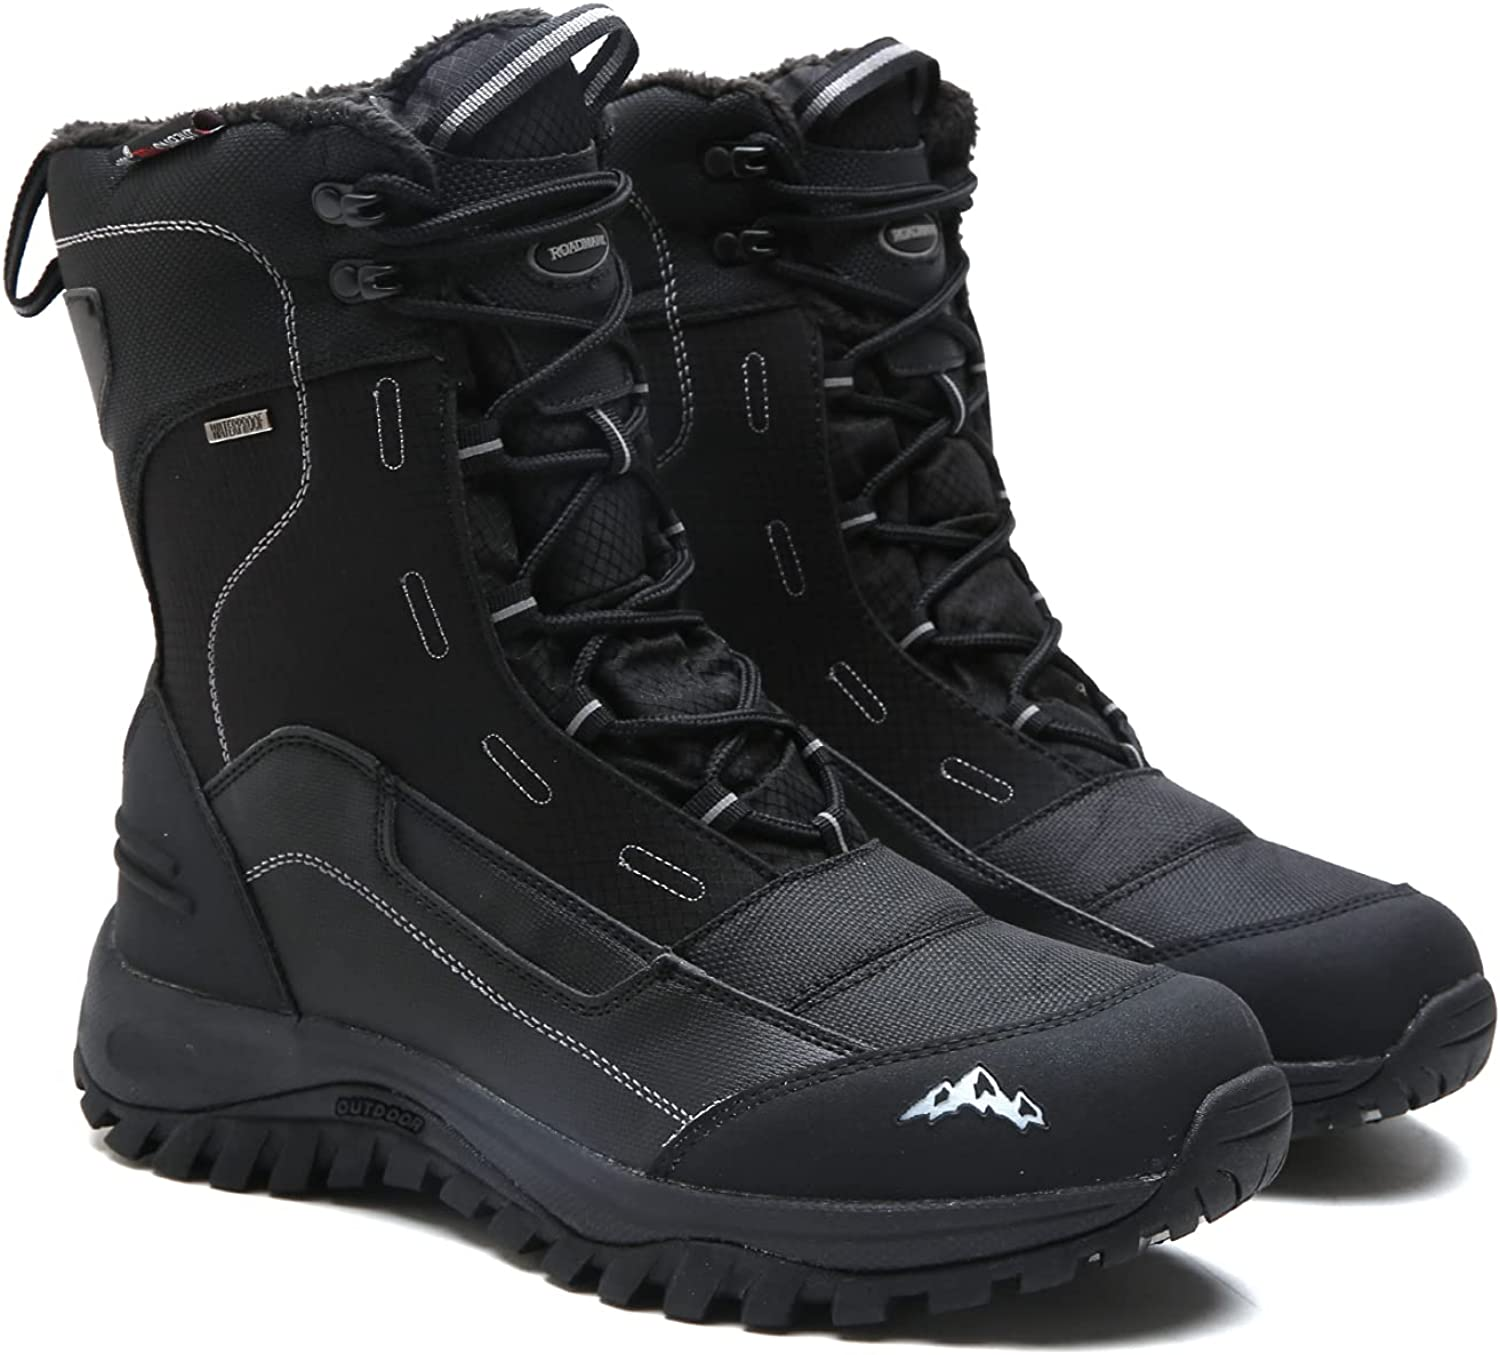 Men's Snow Boots Waterproof New Orleans Mall Insulated Hiking Rubber Black Winter Sale Special Price